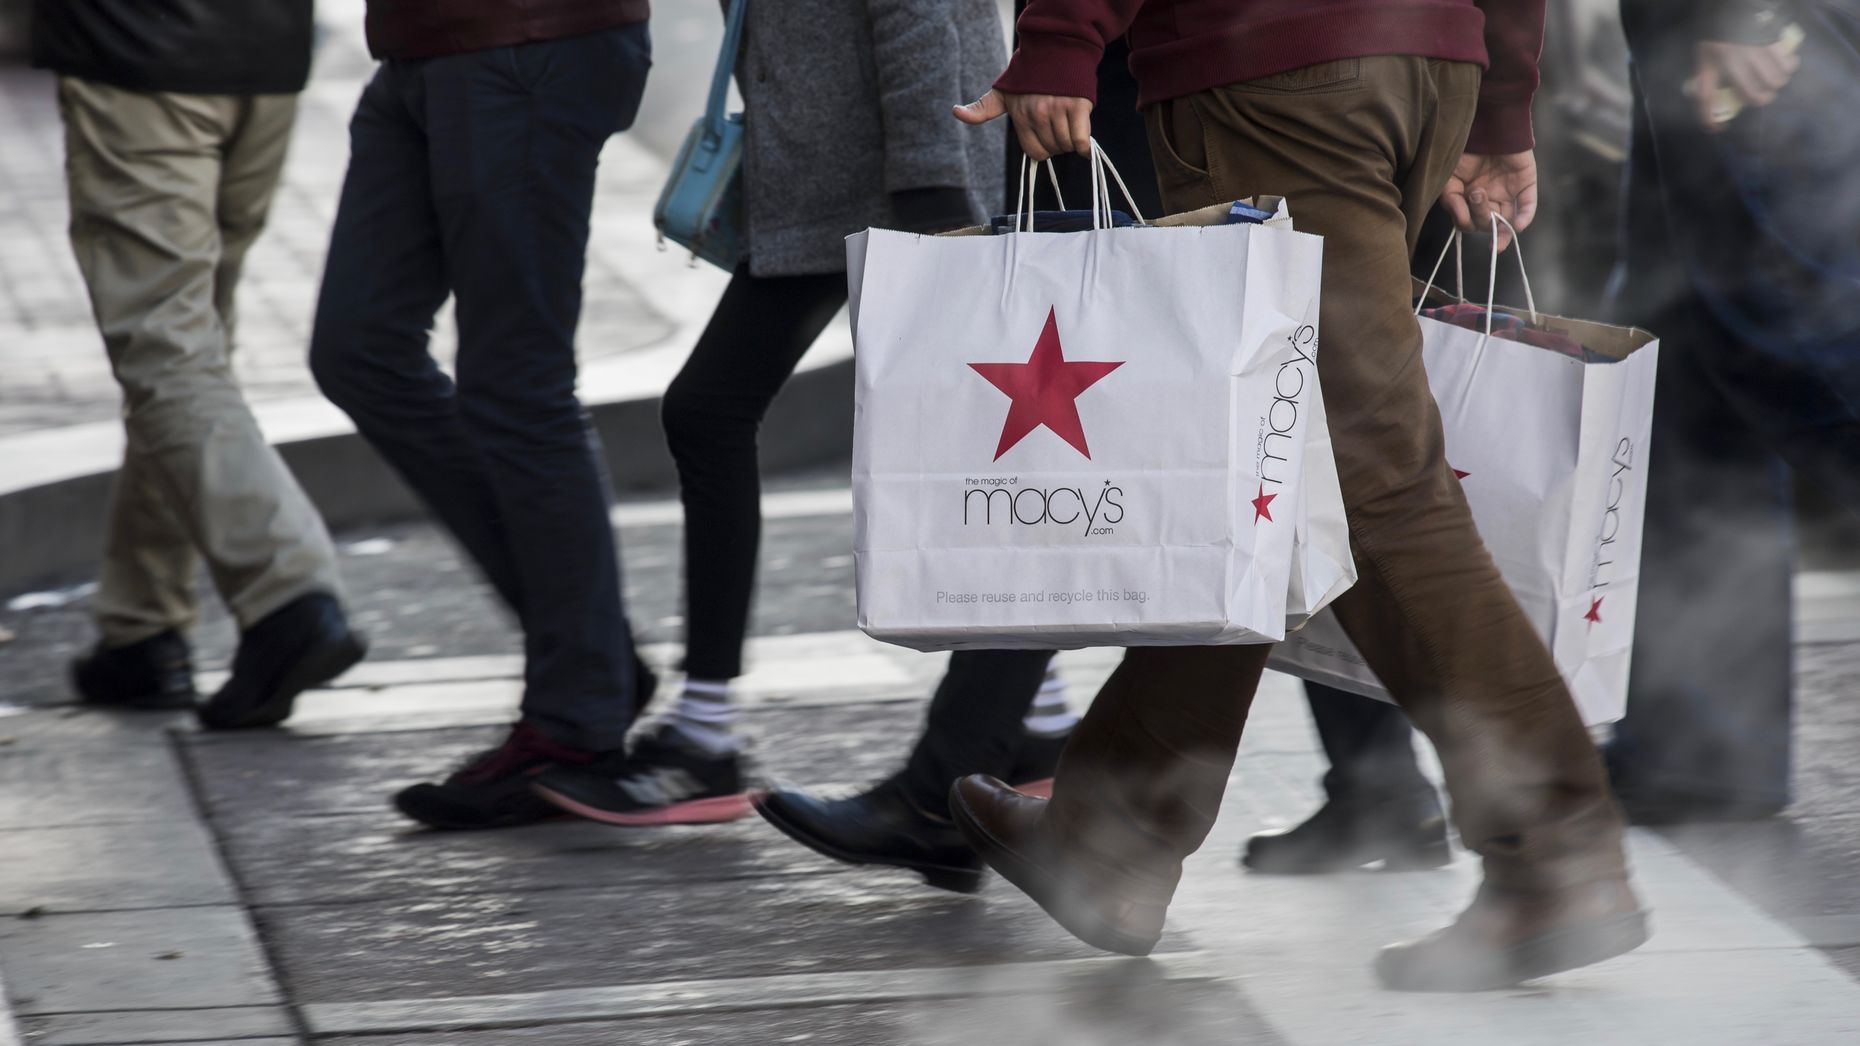 Macy's is testing Facebook's new ad-measuring technology. Photo by Bloomberg.